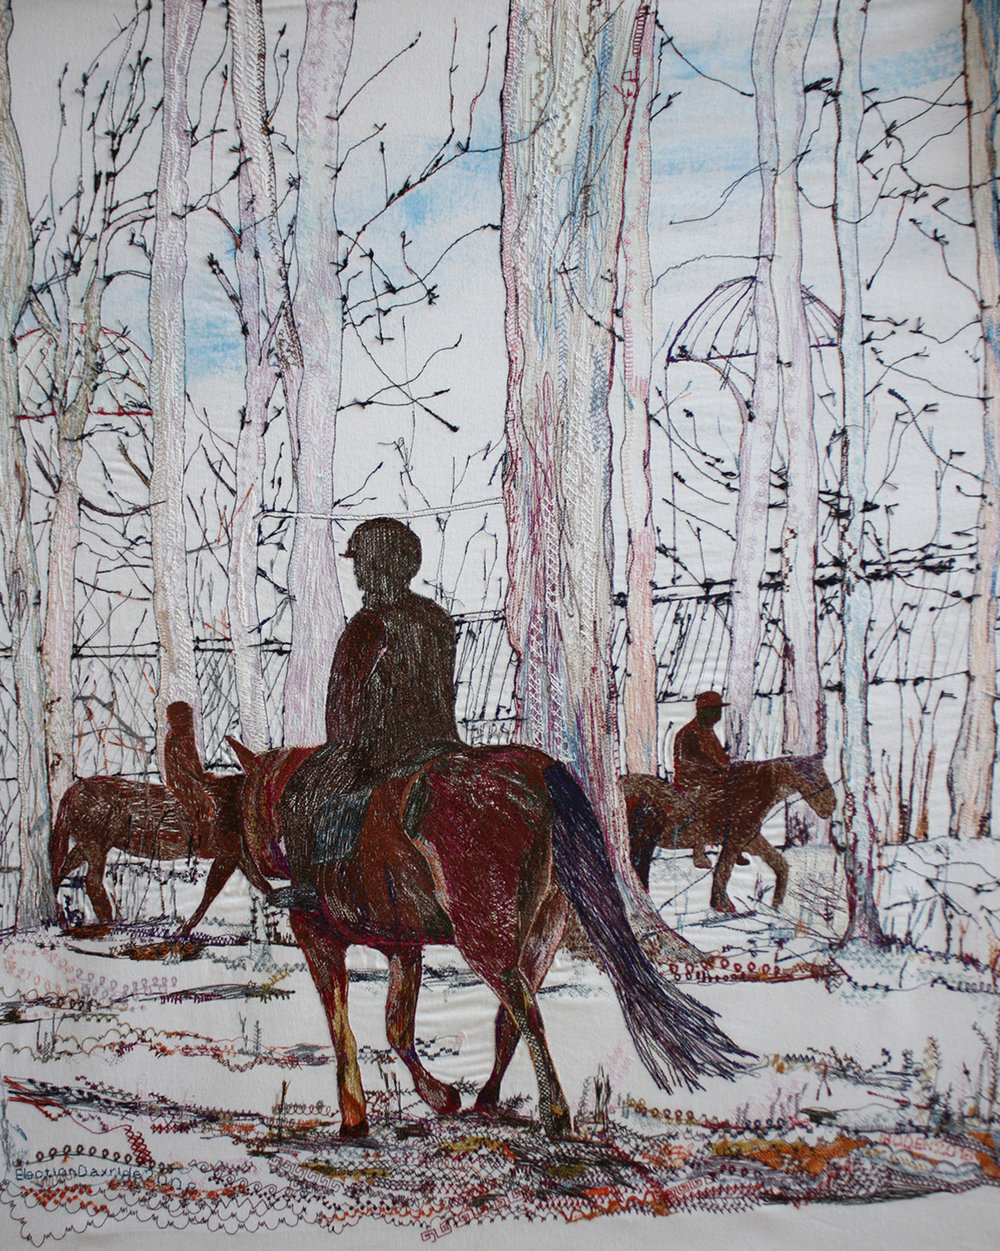 Sugar Bush III, Machine Embroidery, 29.5 x 34 in., 2016